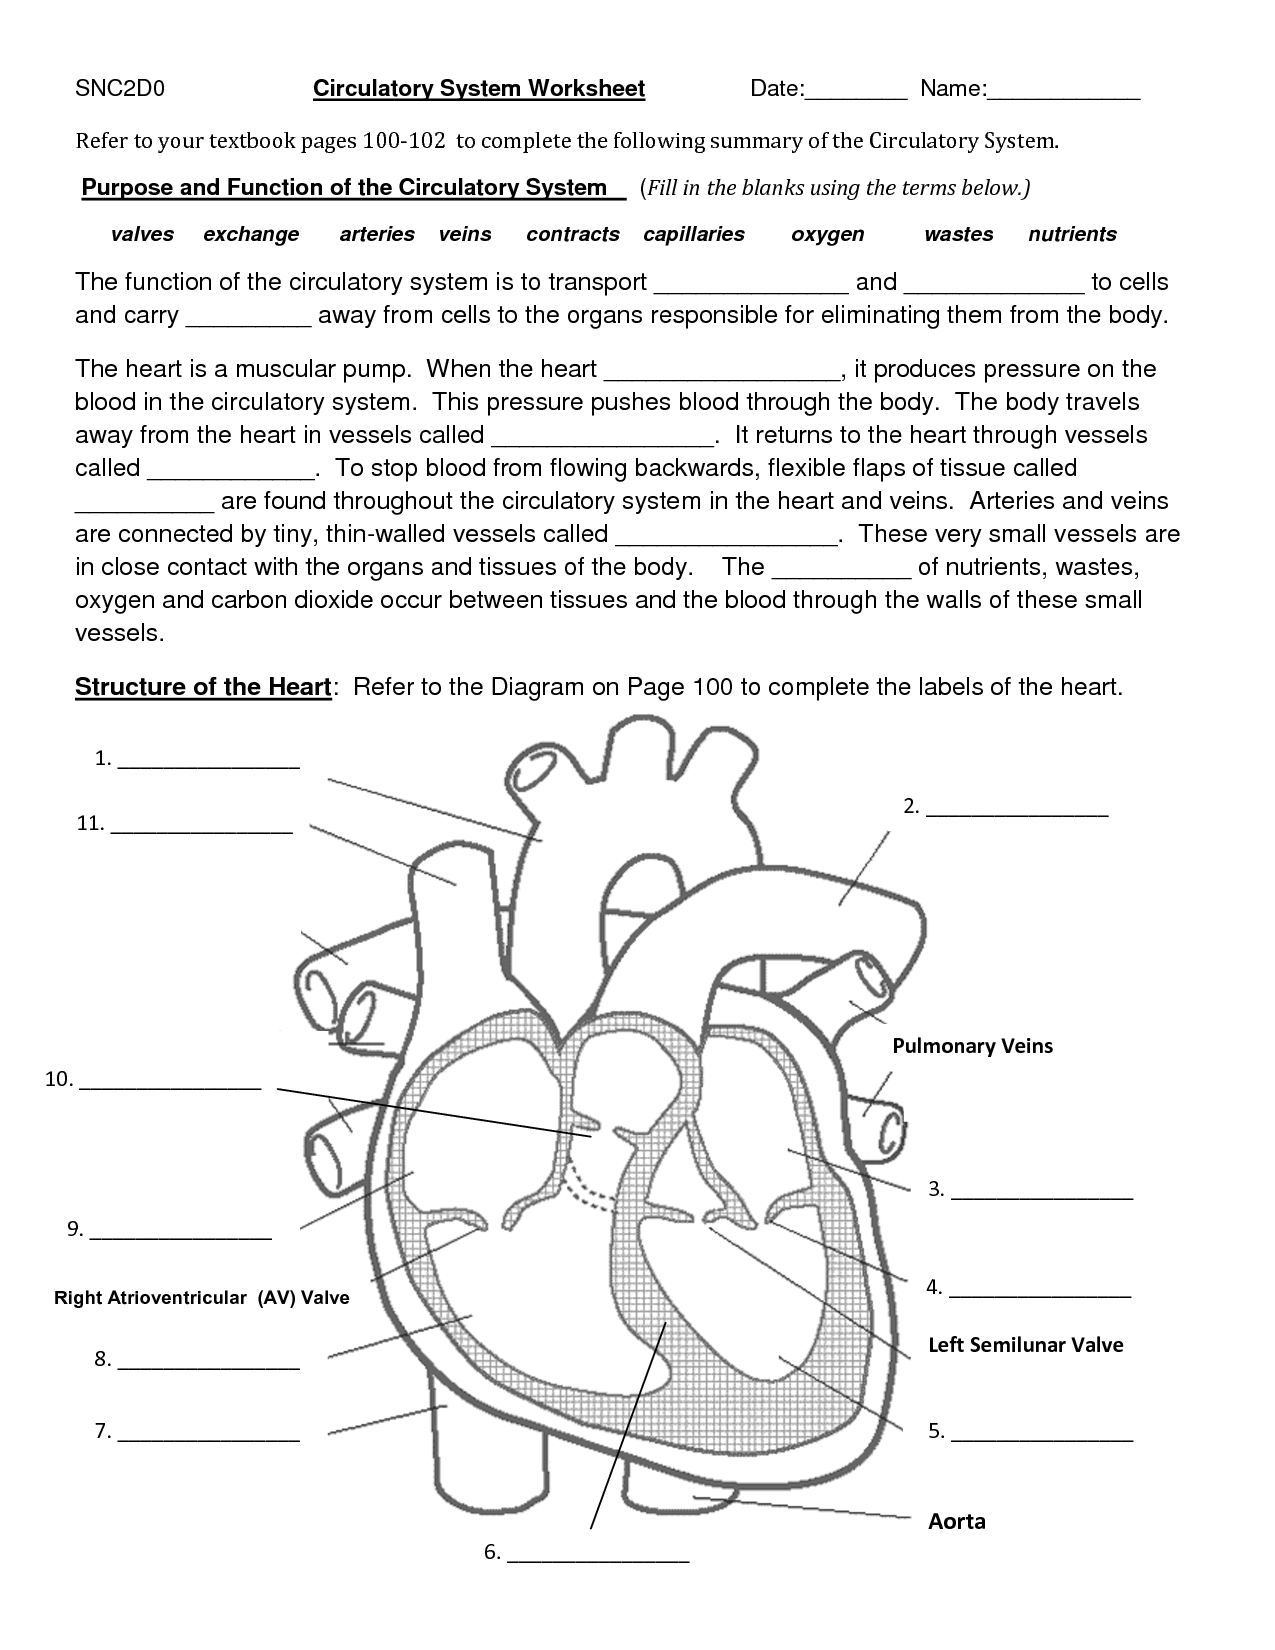 Worksheets Respiratory System Labeling Worksheet Answers respiratory system labeling diagram pinterest circulatory worksheet